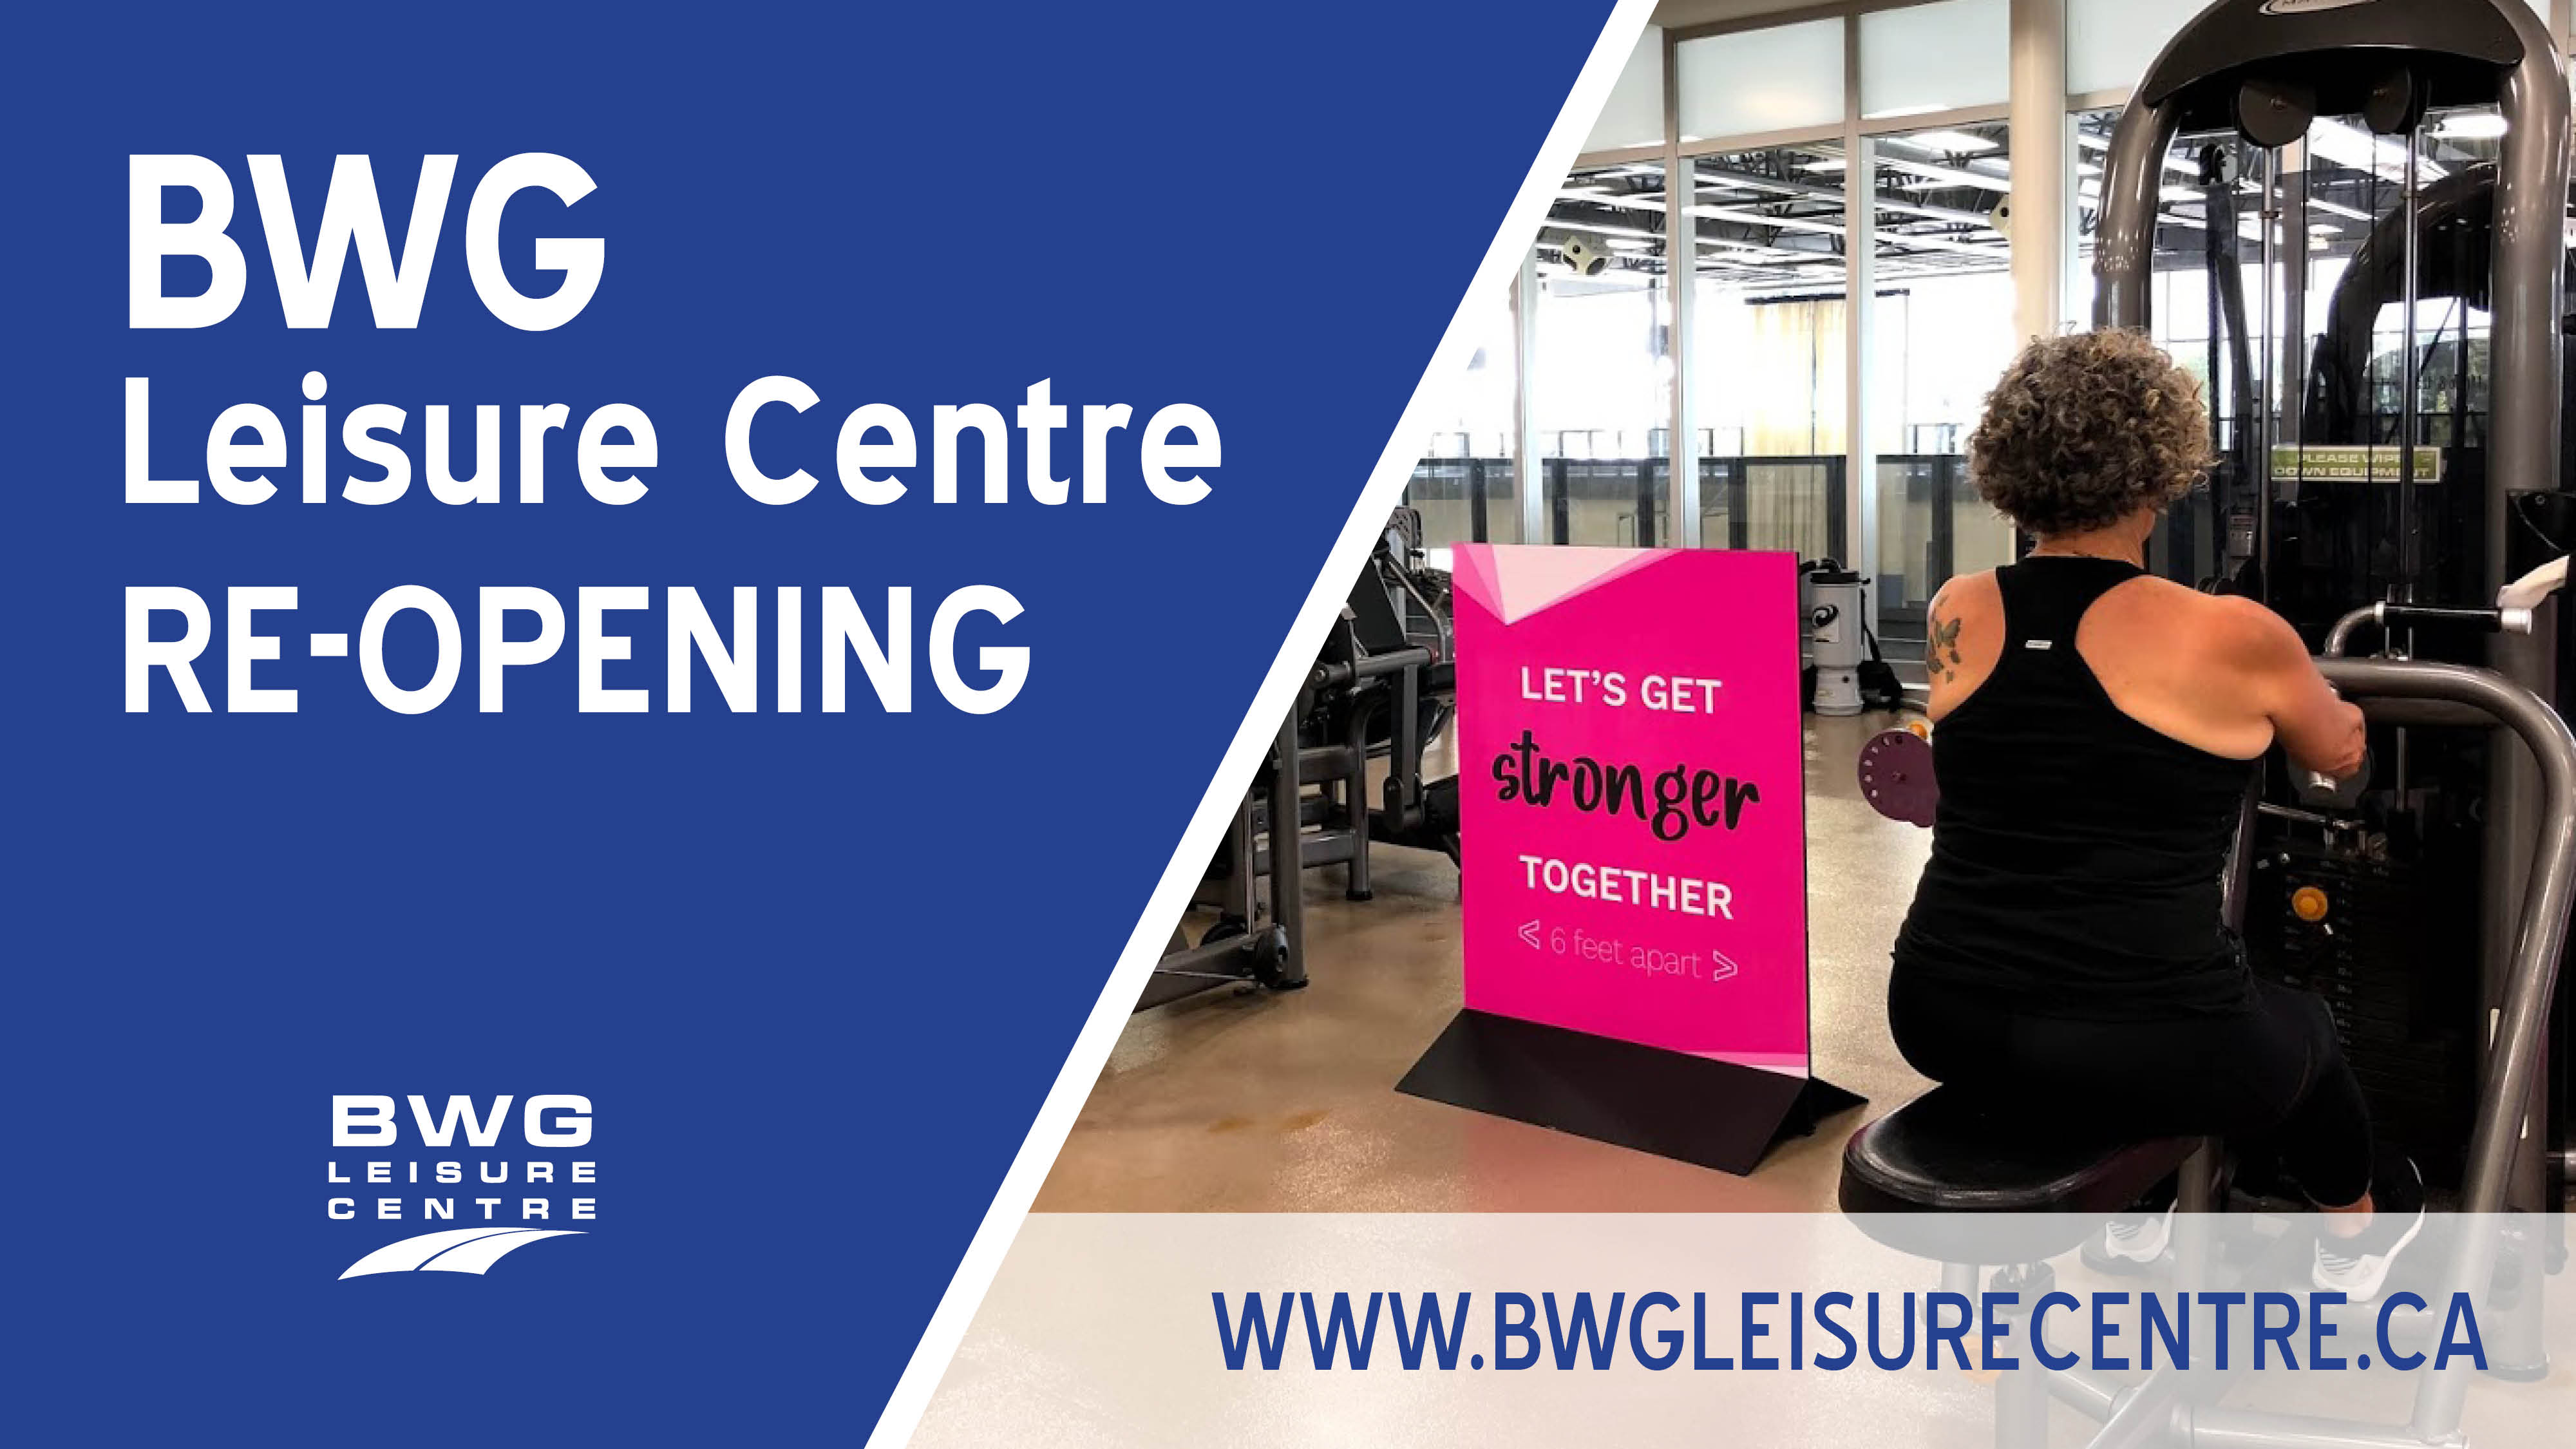 BWG Leisure Centre website